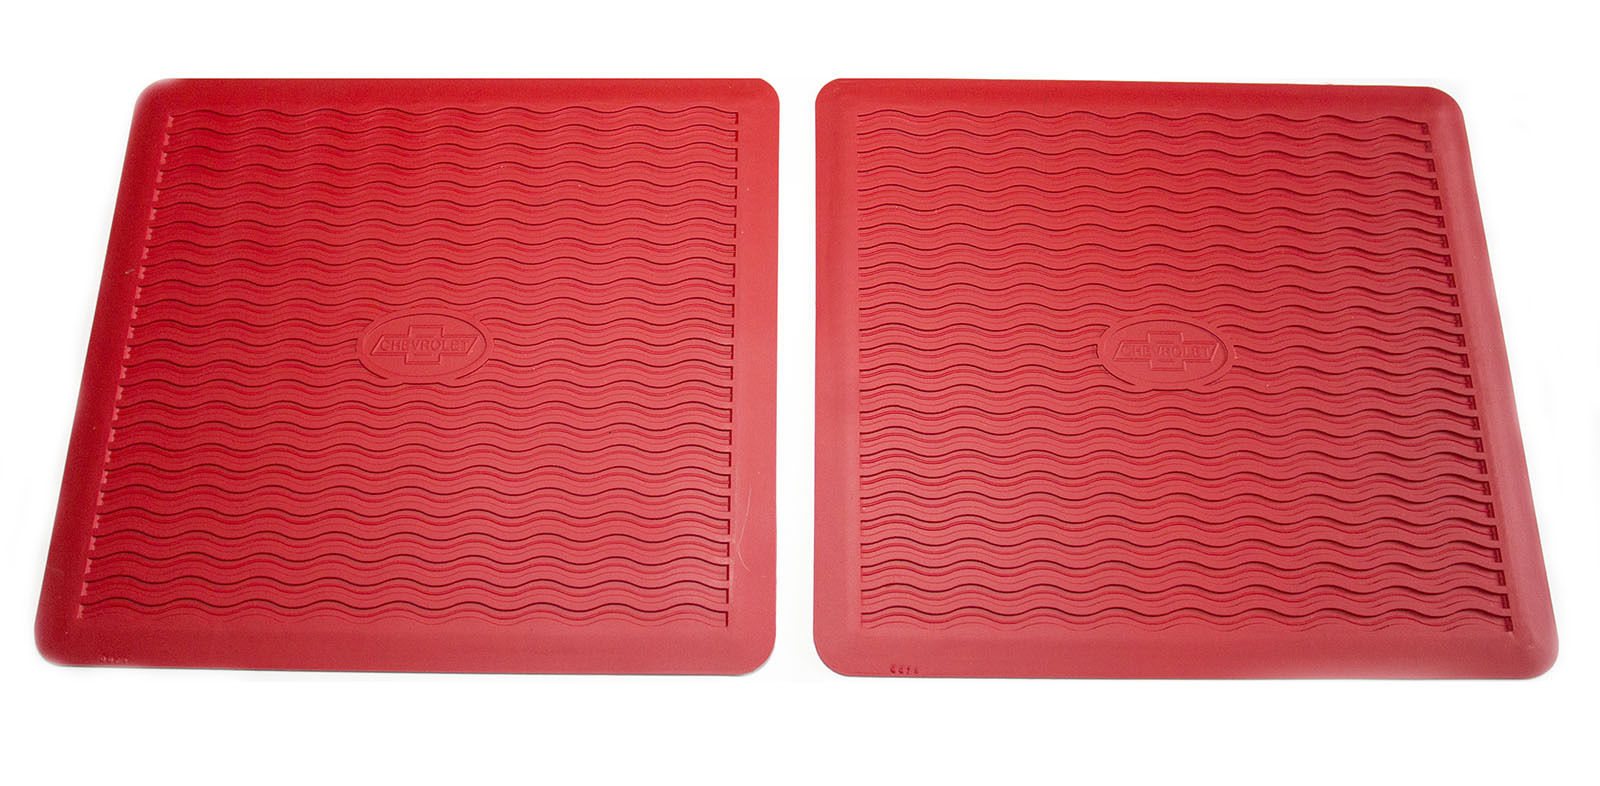 1955 1956 Chevy Factory Accessory Floor Mats RED